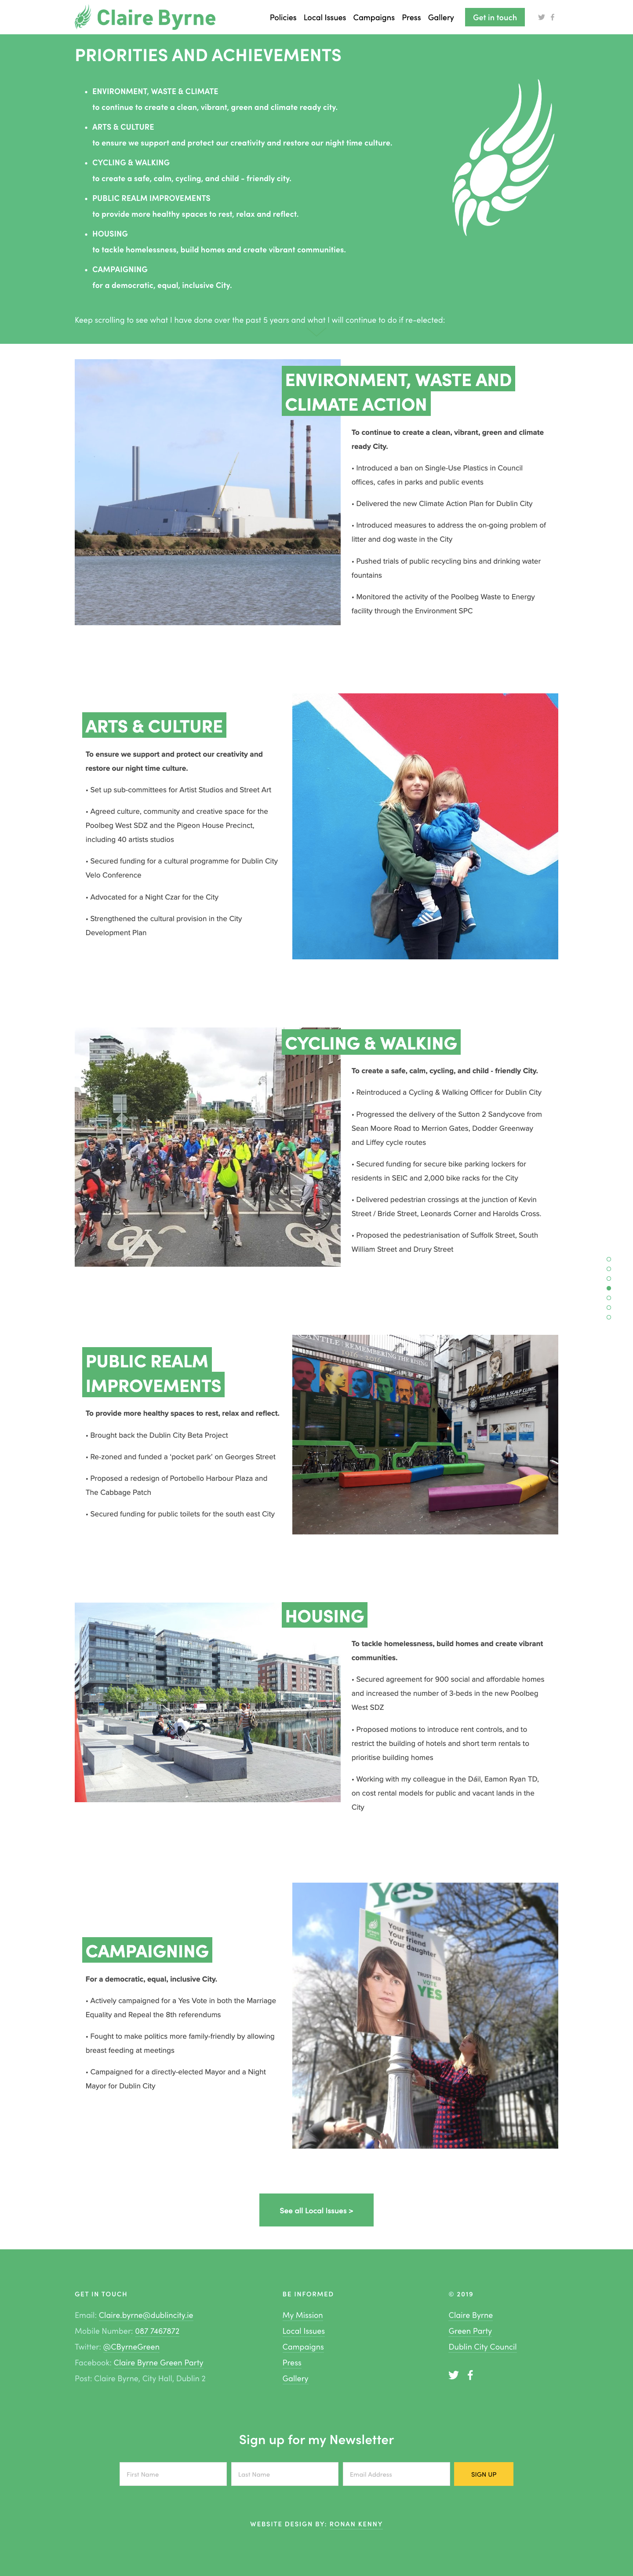 screencapture-cllrclairebyrne-squarespace-mission-2019-06-26-15_14_33.png